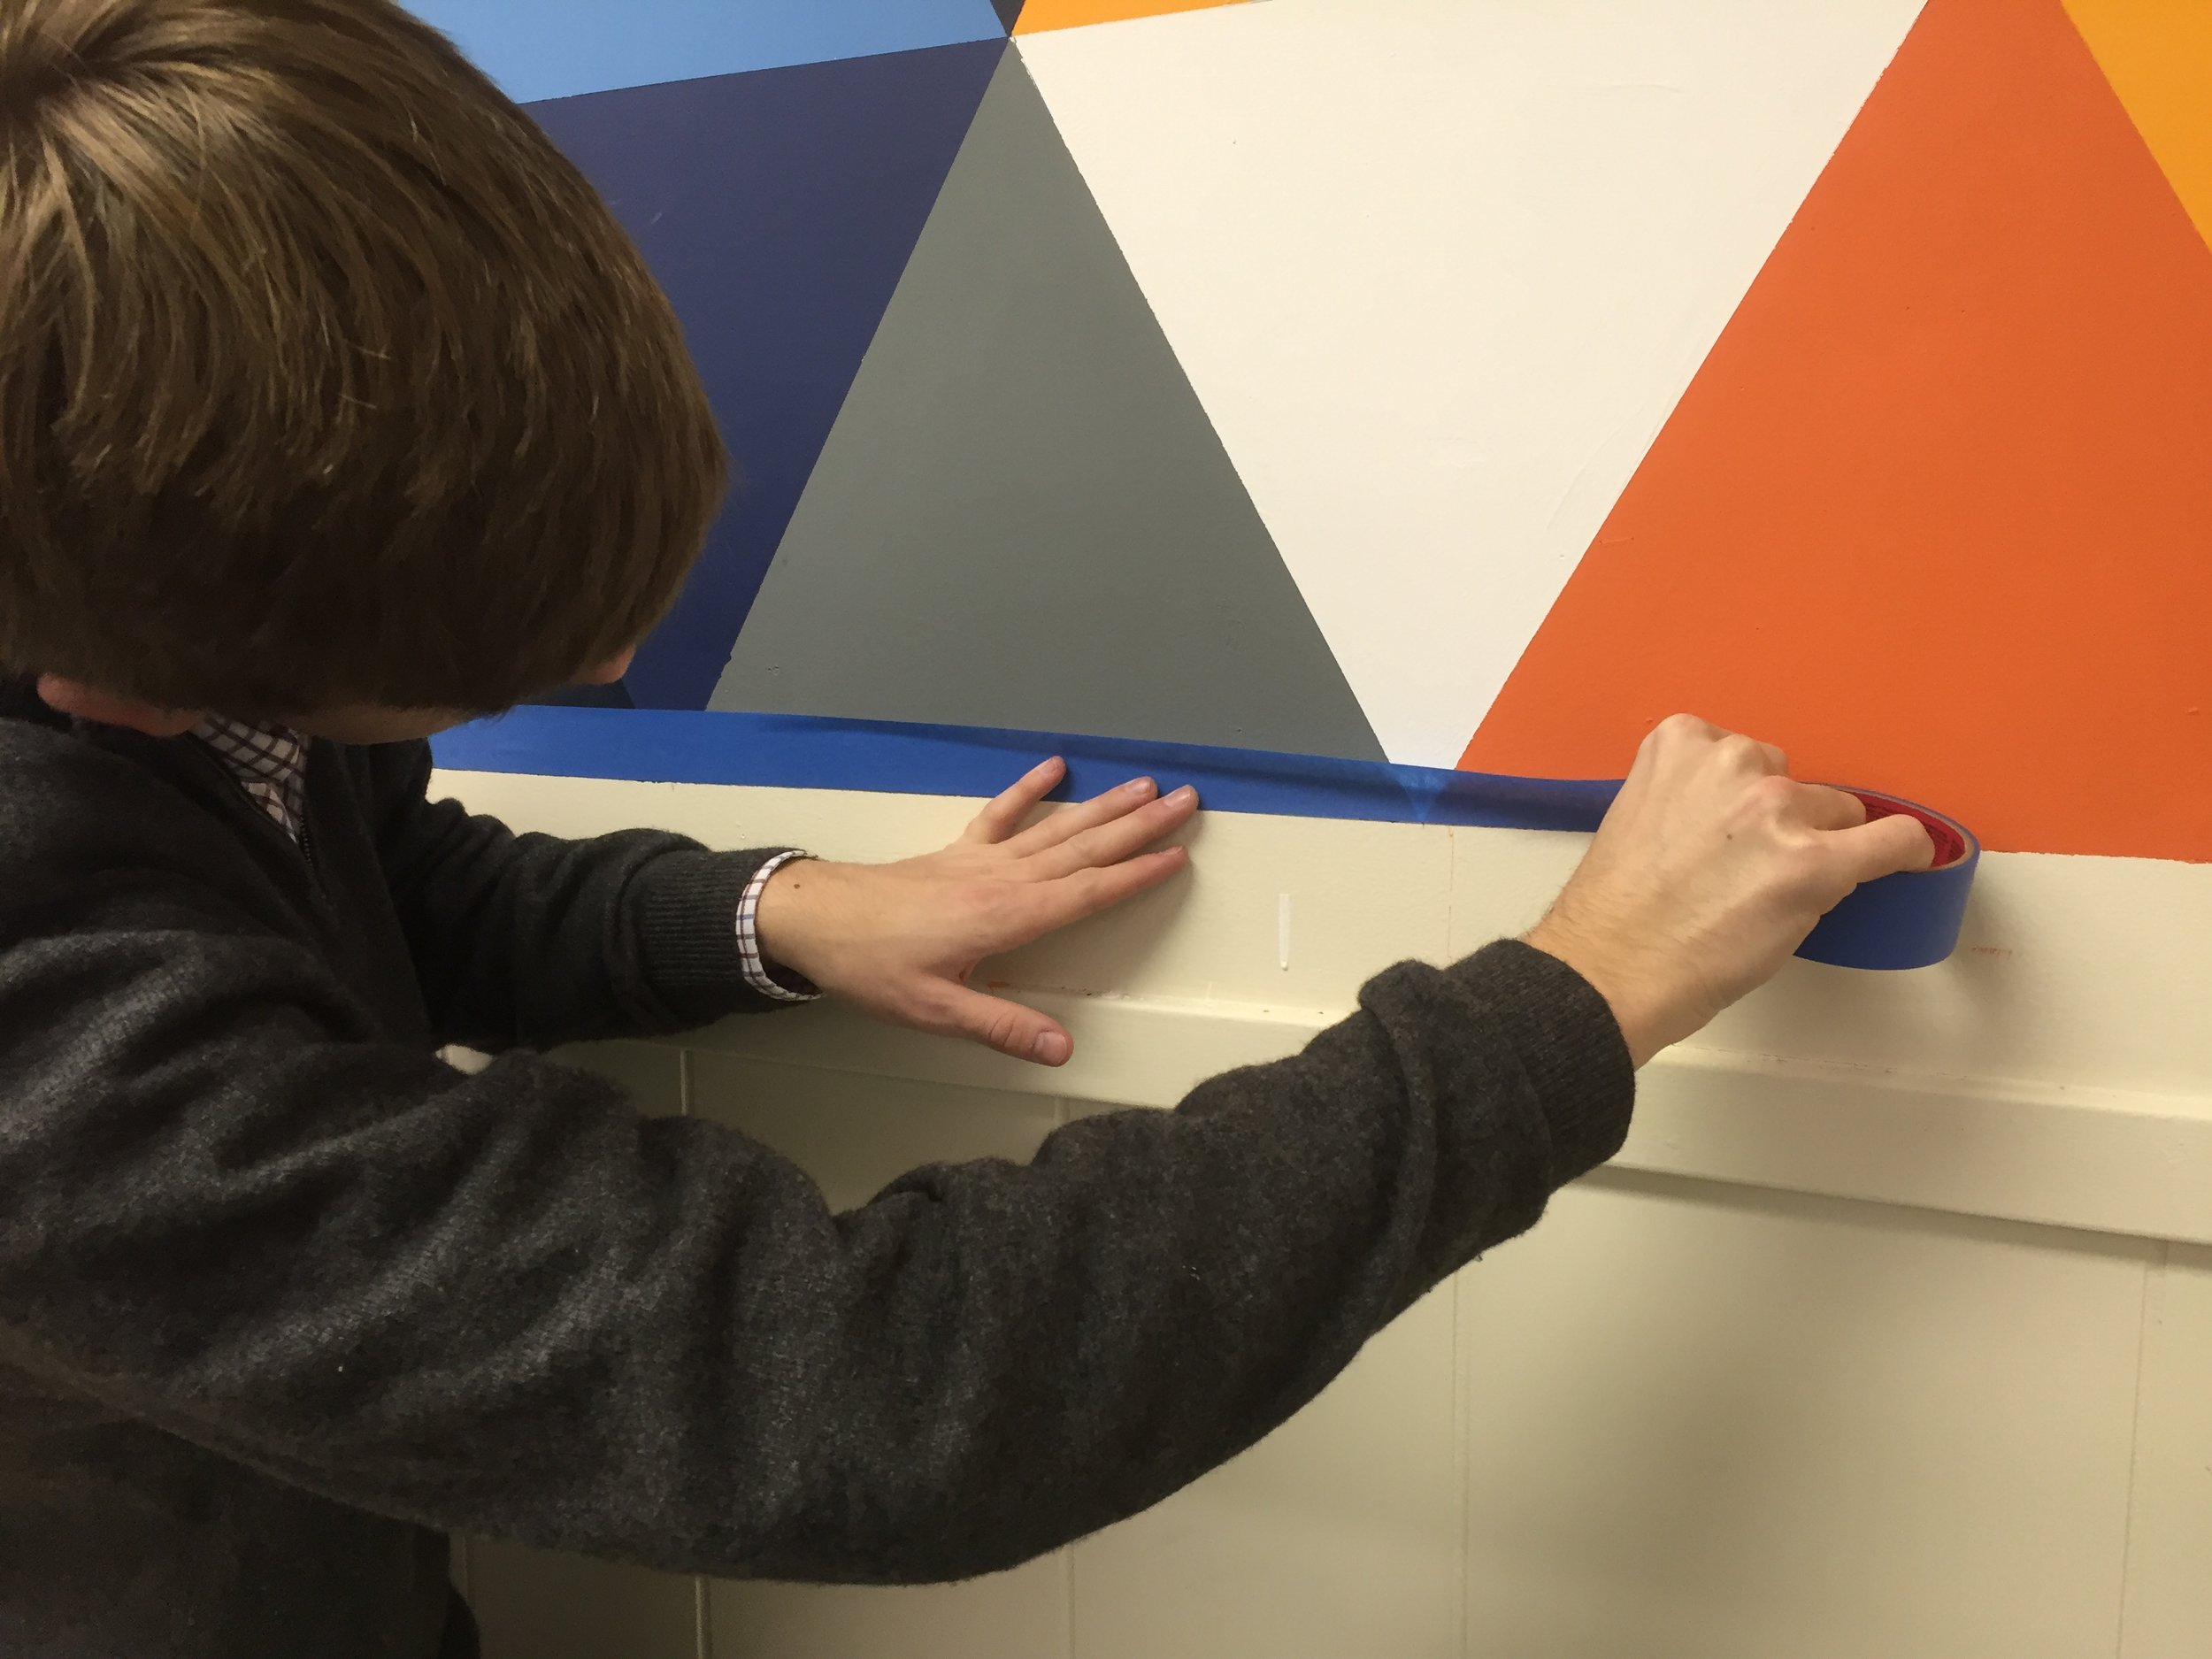 Ethan Bartlett works on a mural in the studio space.